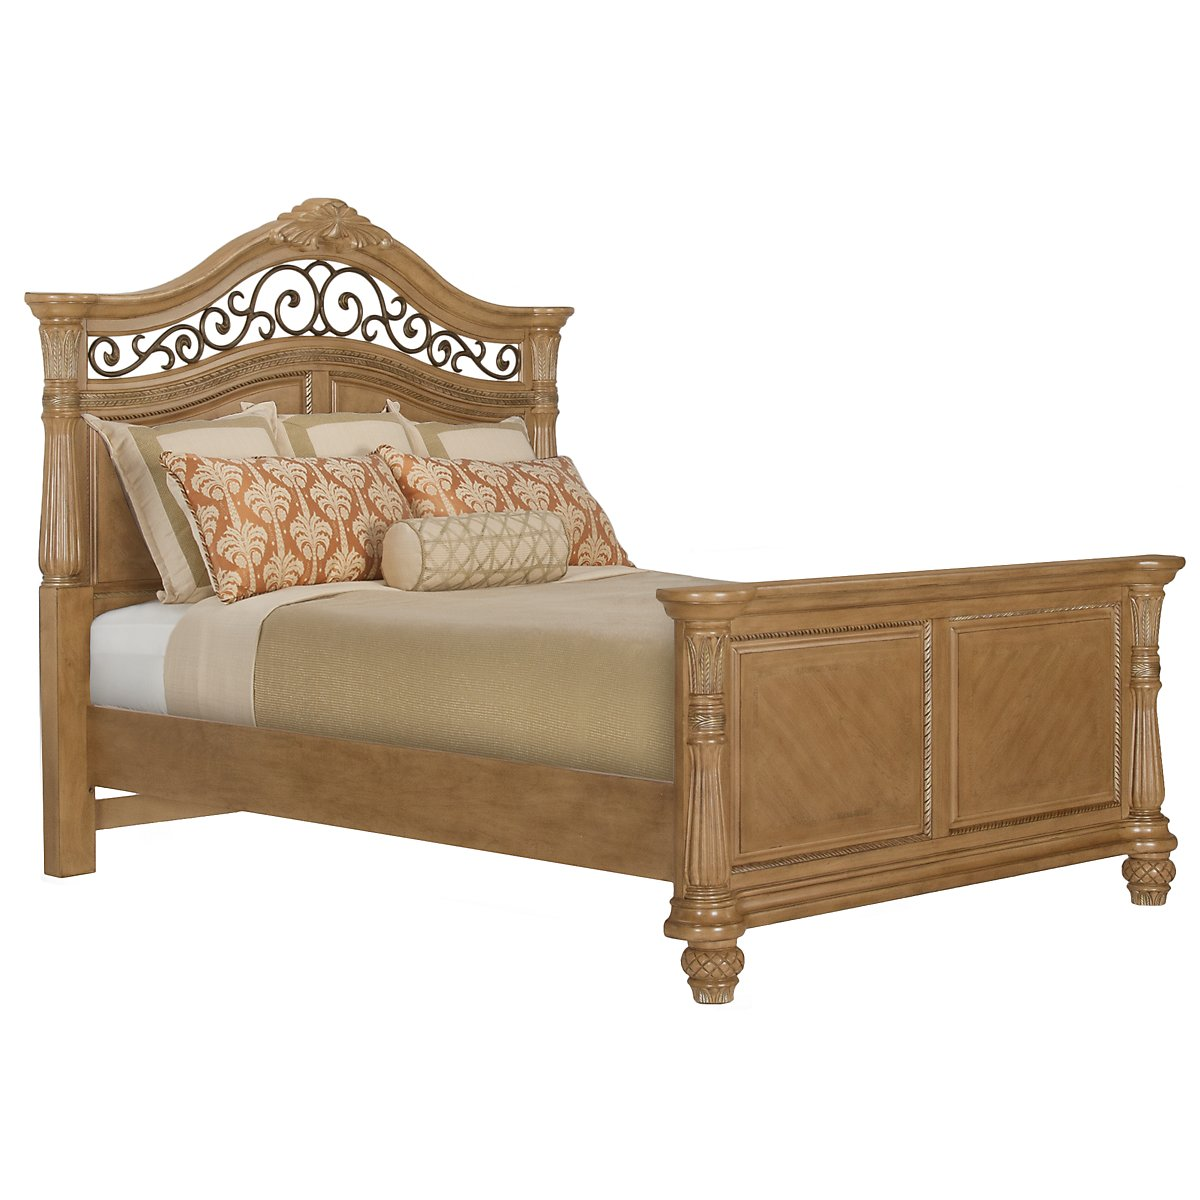 Tradewinds Light Tone Mansion Bed